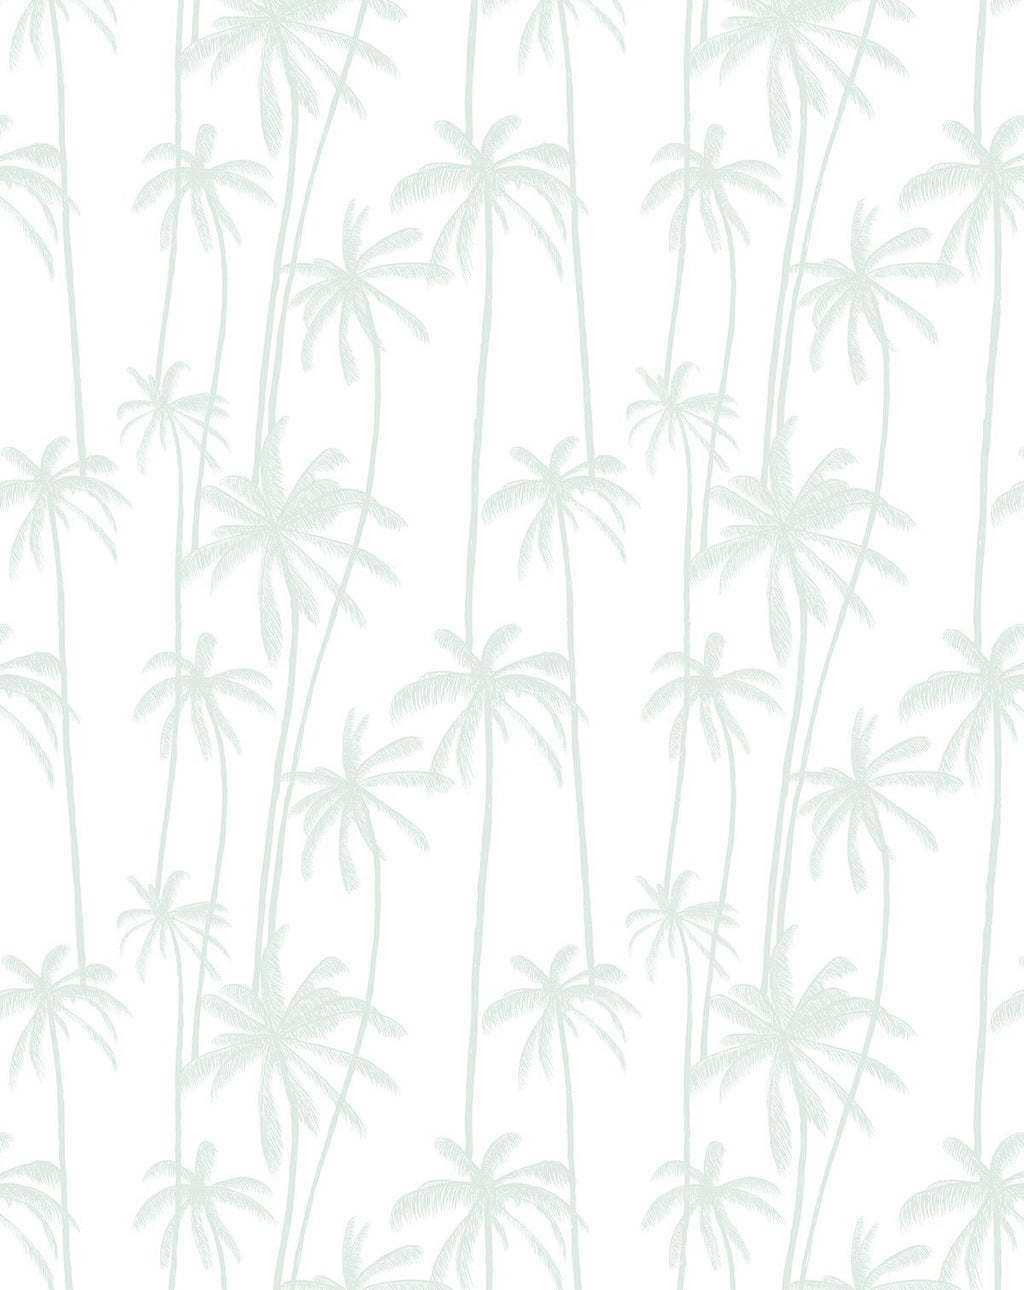 Good Palms Seafoam Wallpaper - Olive et Oriel